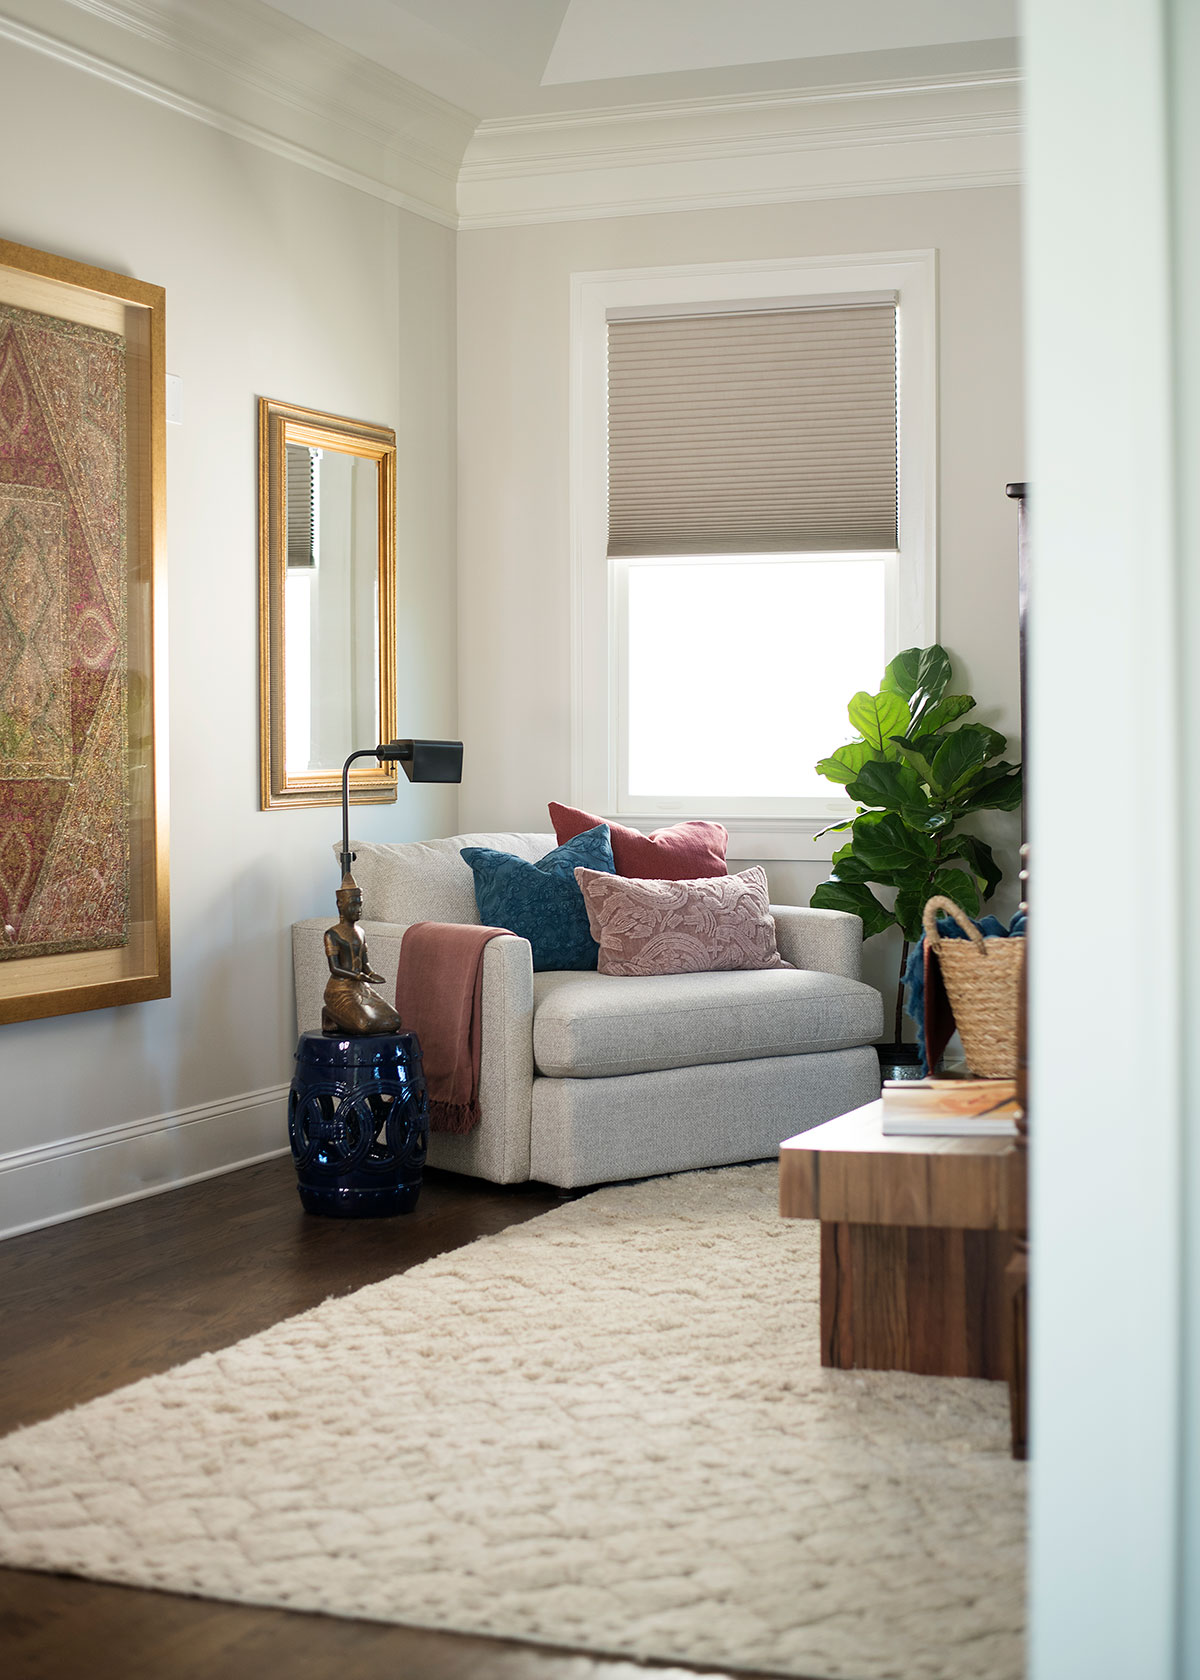 Sitting area in master bedroom with wood and brass accents